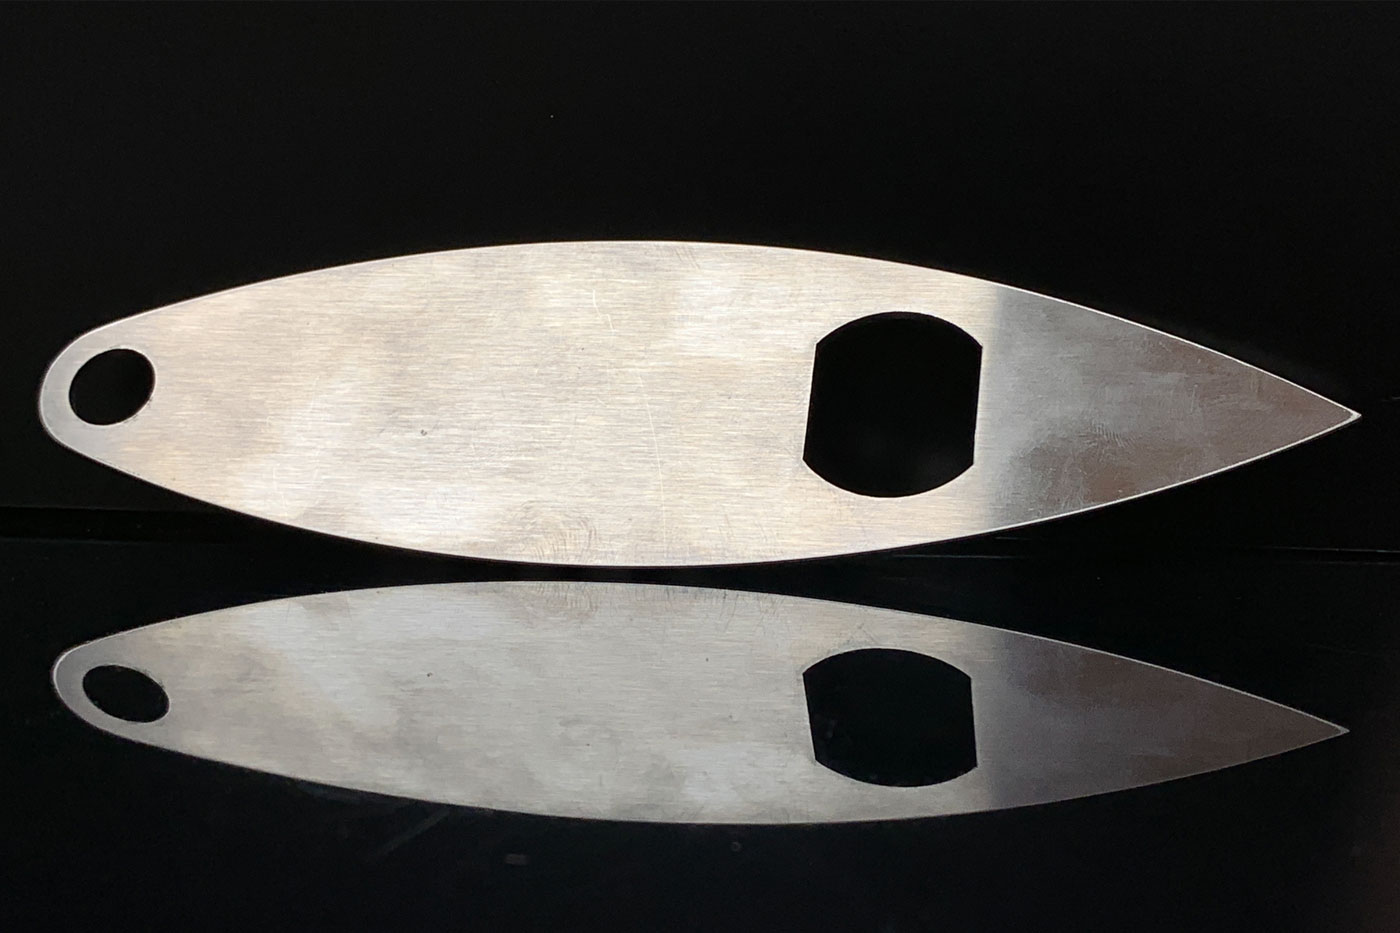 This boat-shaped bottle opener is made of 14 gauge stainless steel